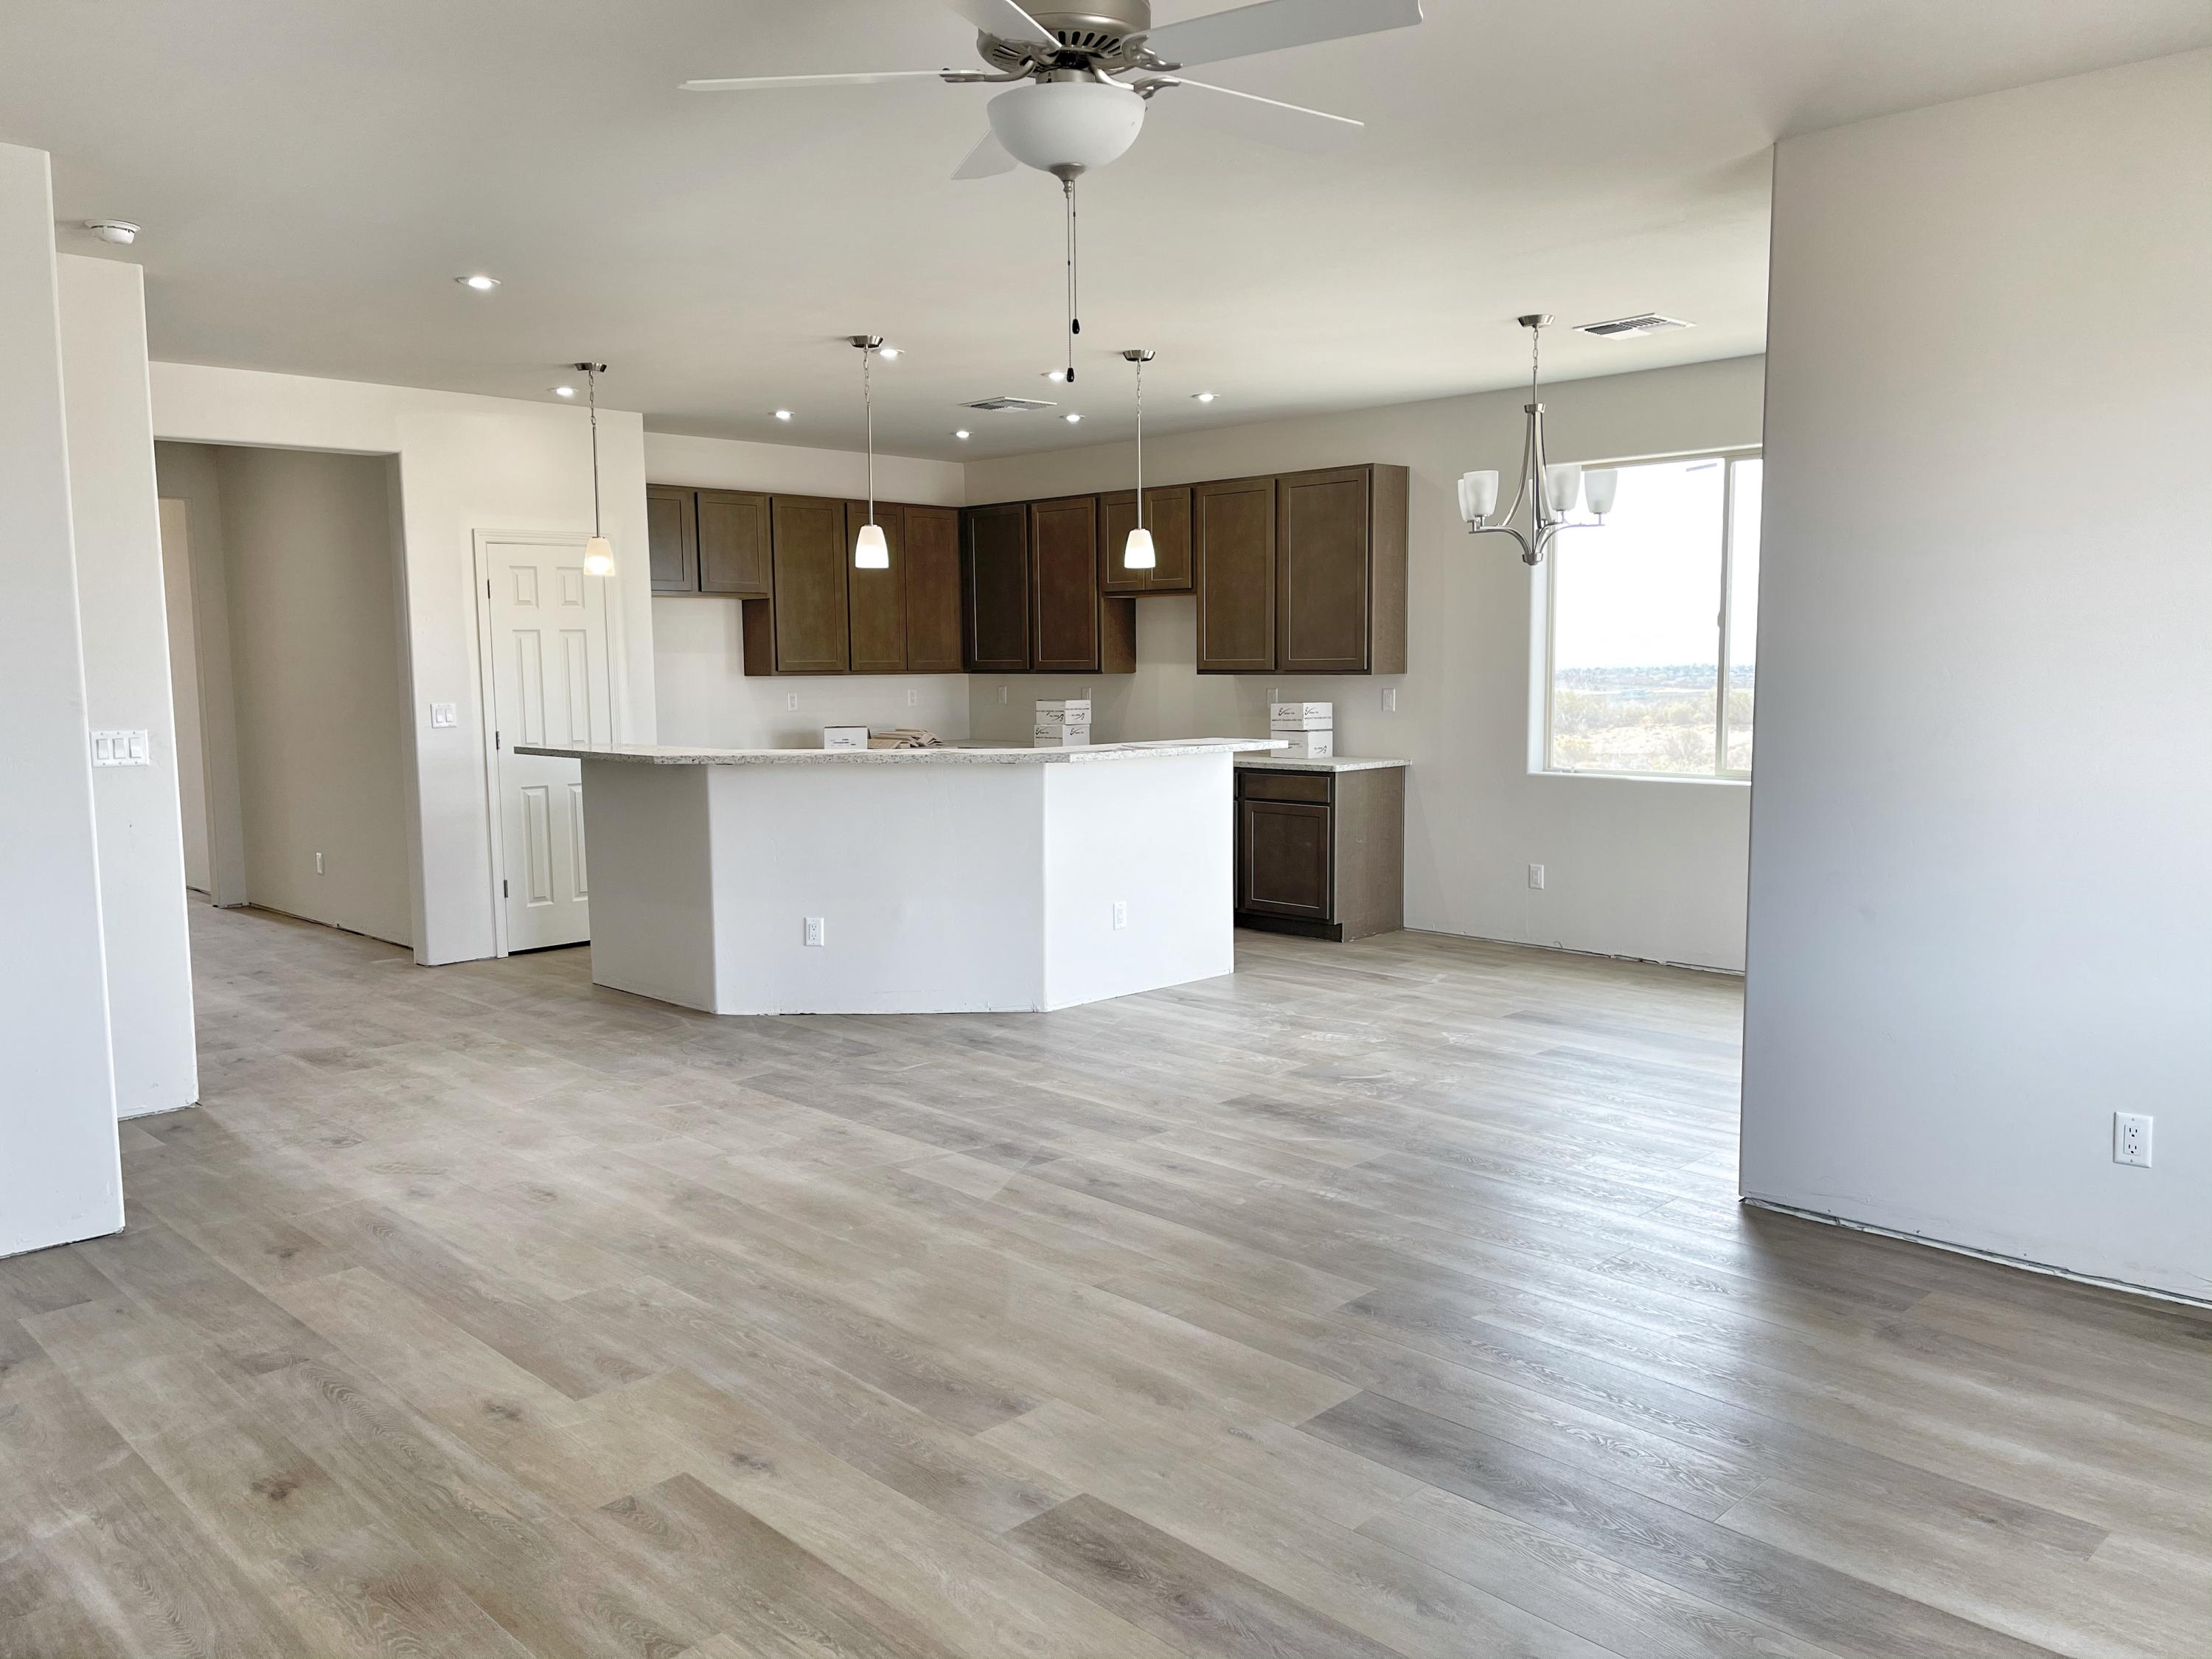 Come take a look at this beautiful new construction home. Stunning finishes at every turn in this open concept floorplan. Granite Countertops, Soft-close wood tone Shaker Cabinets, Stainless Steel appliances, Refrigerated Air, 9' ceilings, 8' front and back doors, Hand trowel drywall finish, extra Large Laundry/utility room, Recirculating Hot Water, Rough in for Water Softener, High Efficiency 96% Furnace and Extra storage leading to the Insulated Garage with Insulated Door.  Spacious master bedroom & bathroom with double vanity are separate from guest rooms.  All of this on a half acre lot.  Home is scheduled to be completed mid May.  Contact your lender and realtor today! Photos show construction progress but updated photos coming soon!